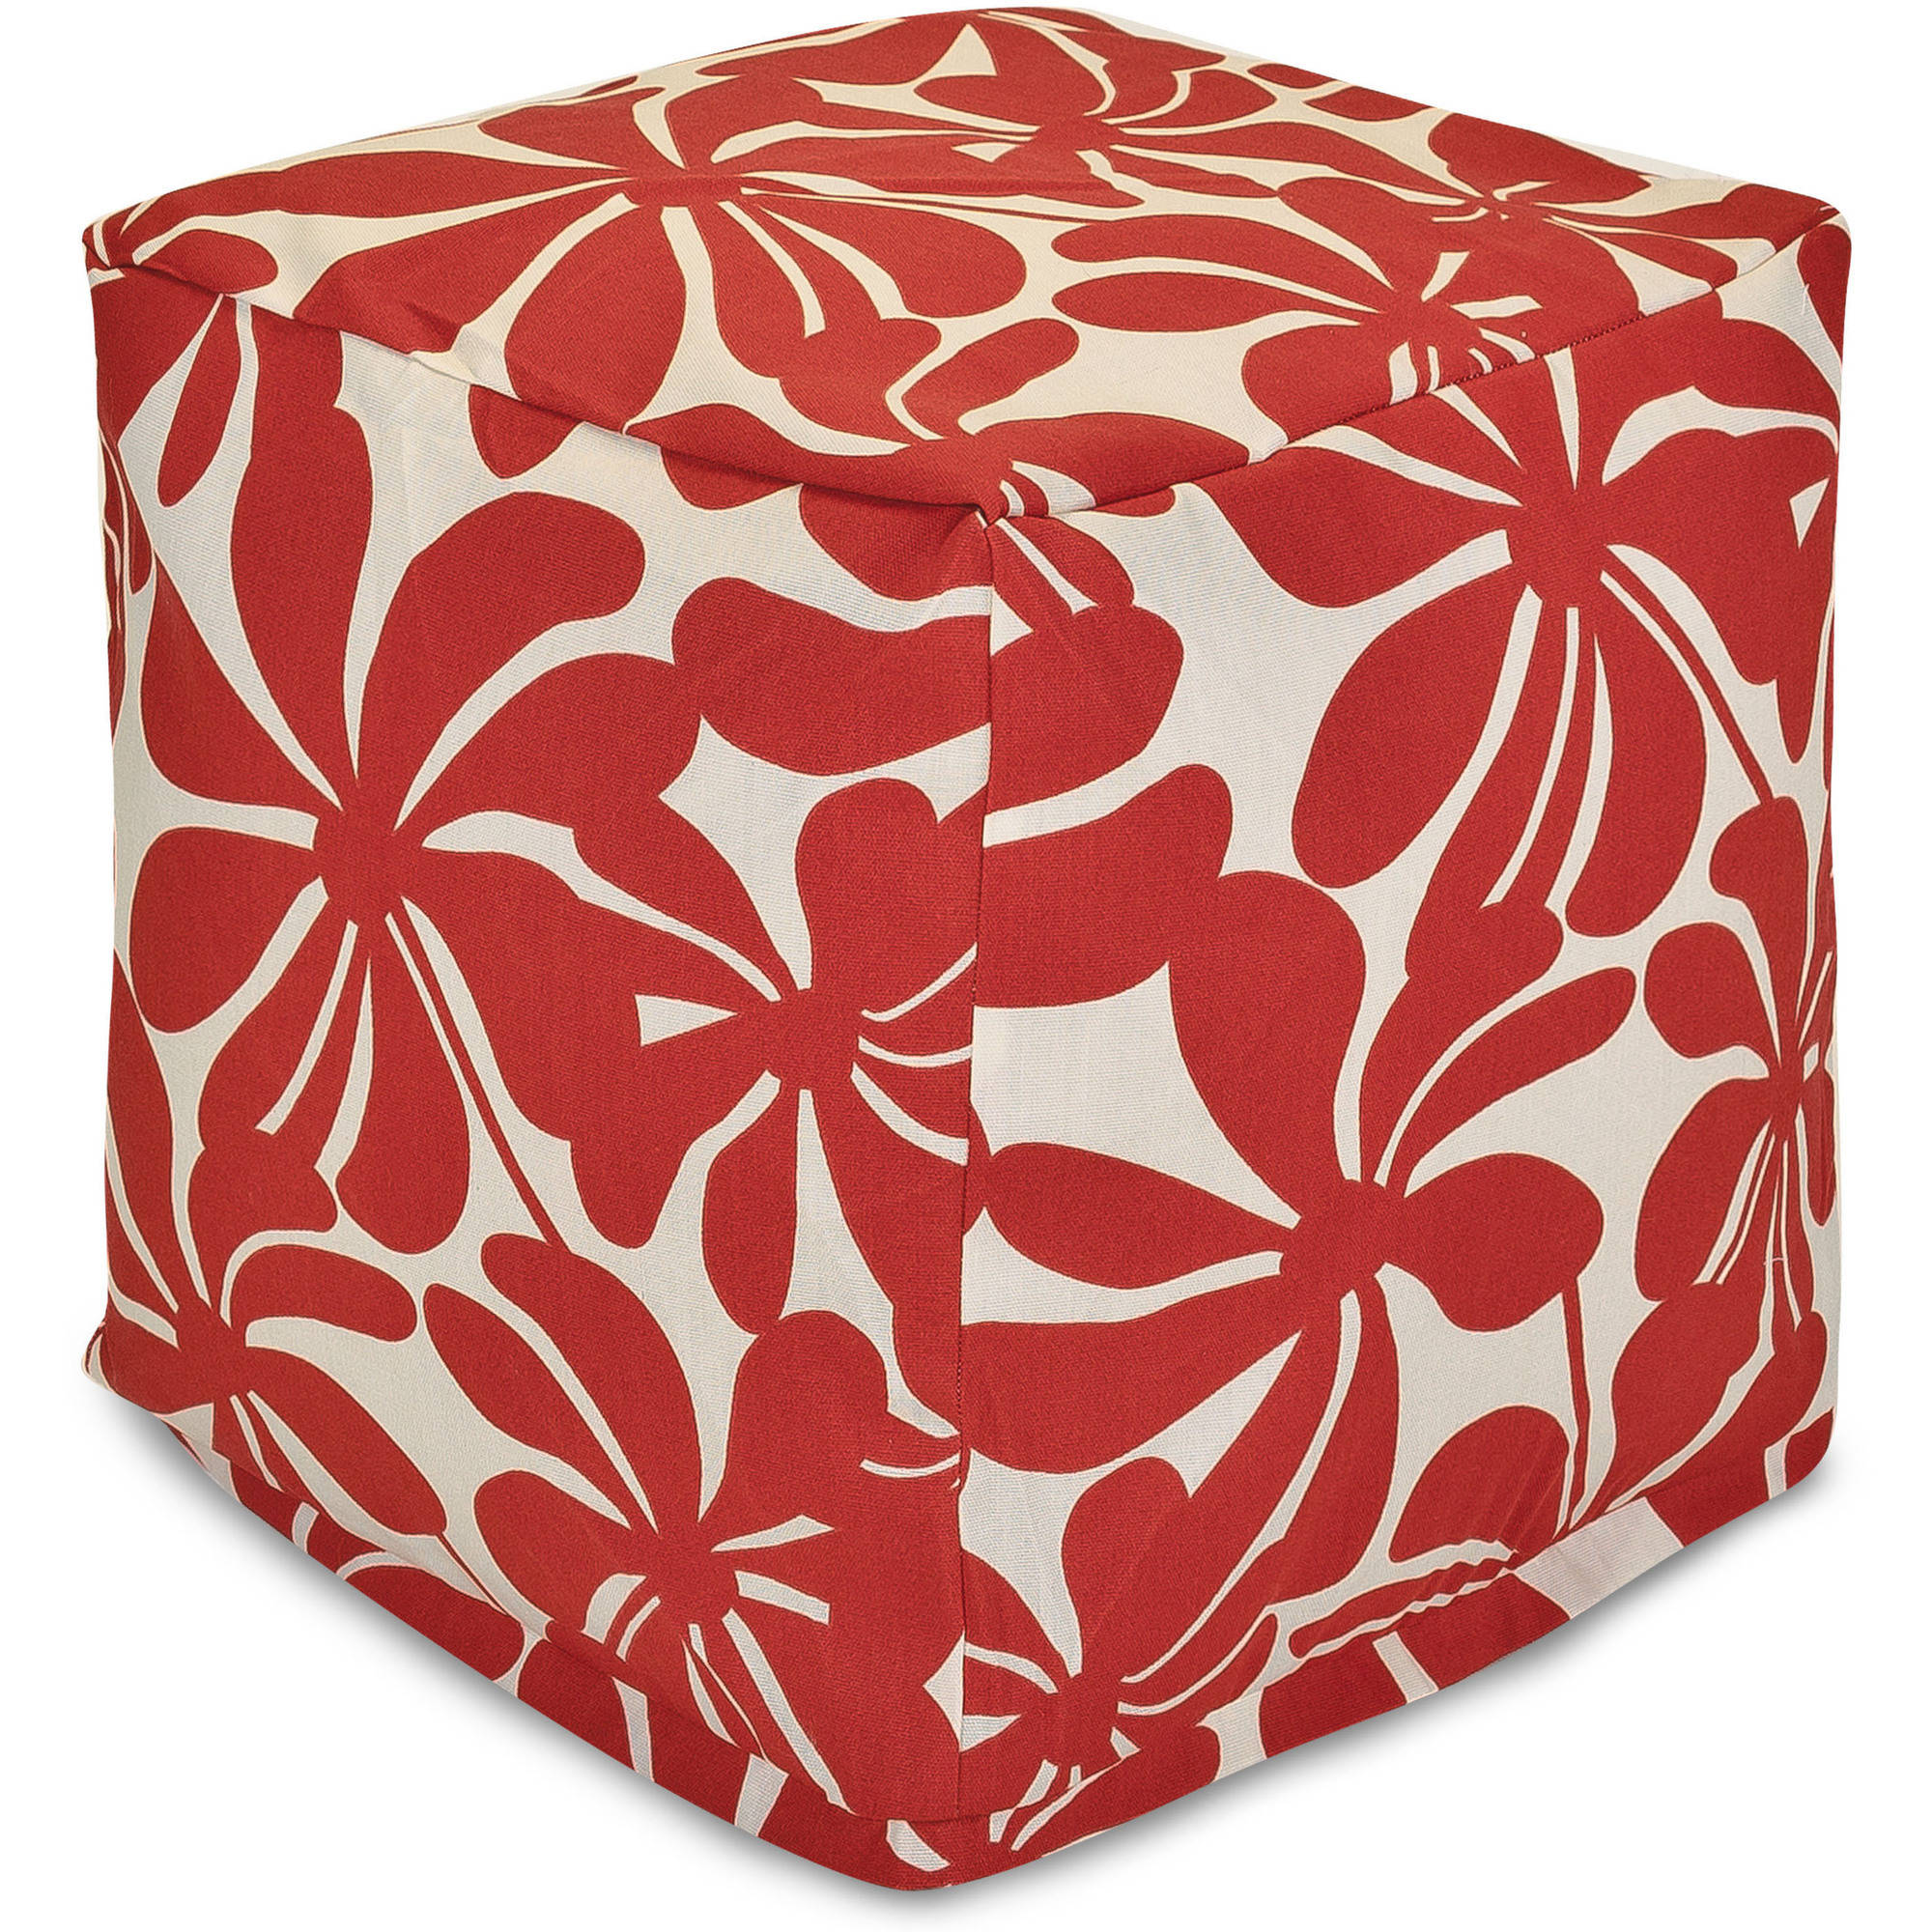 Majestic Home Goods Plantation Bean Bag Cube, Indoor/Outdoor